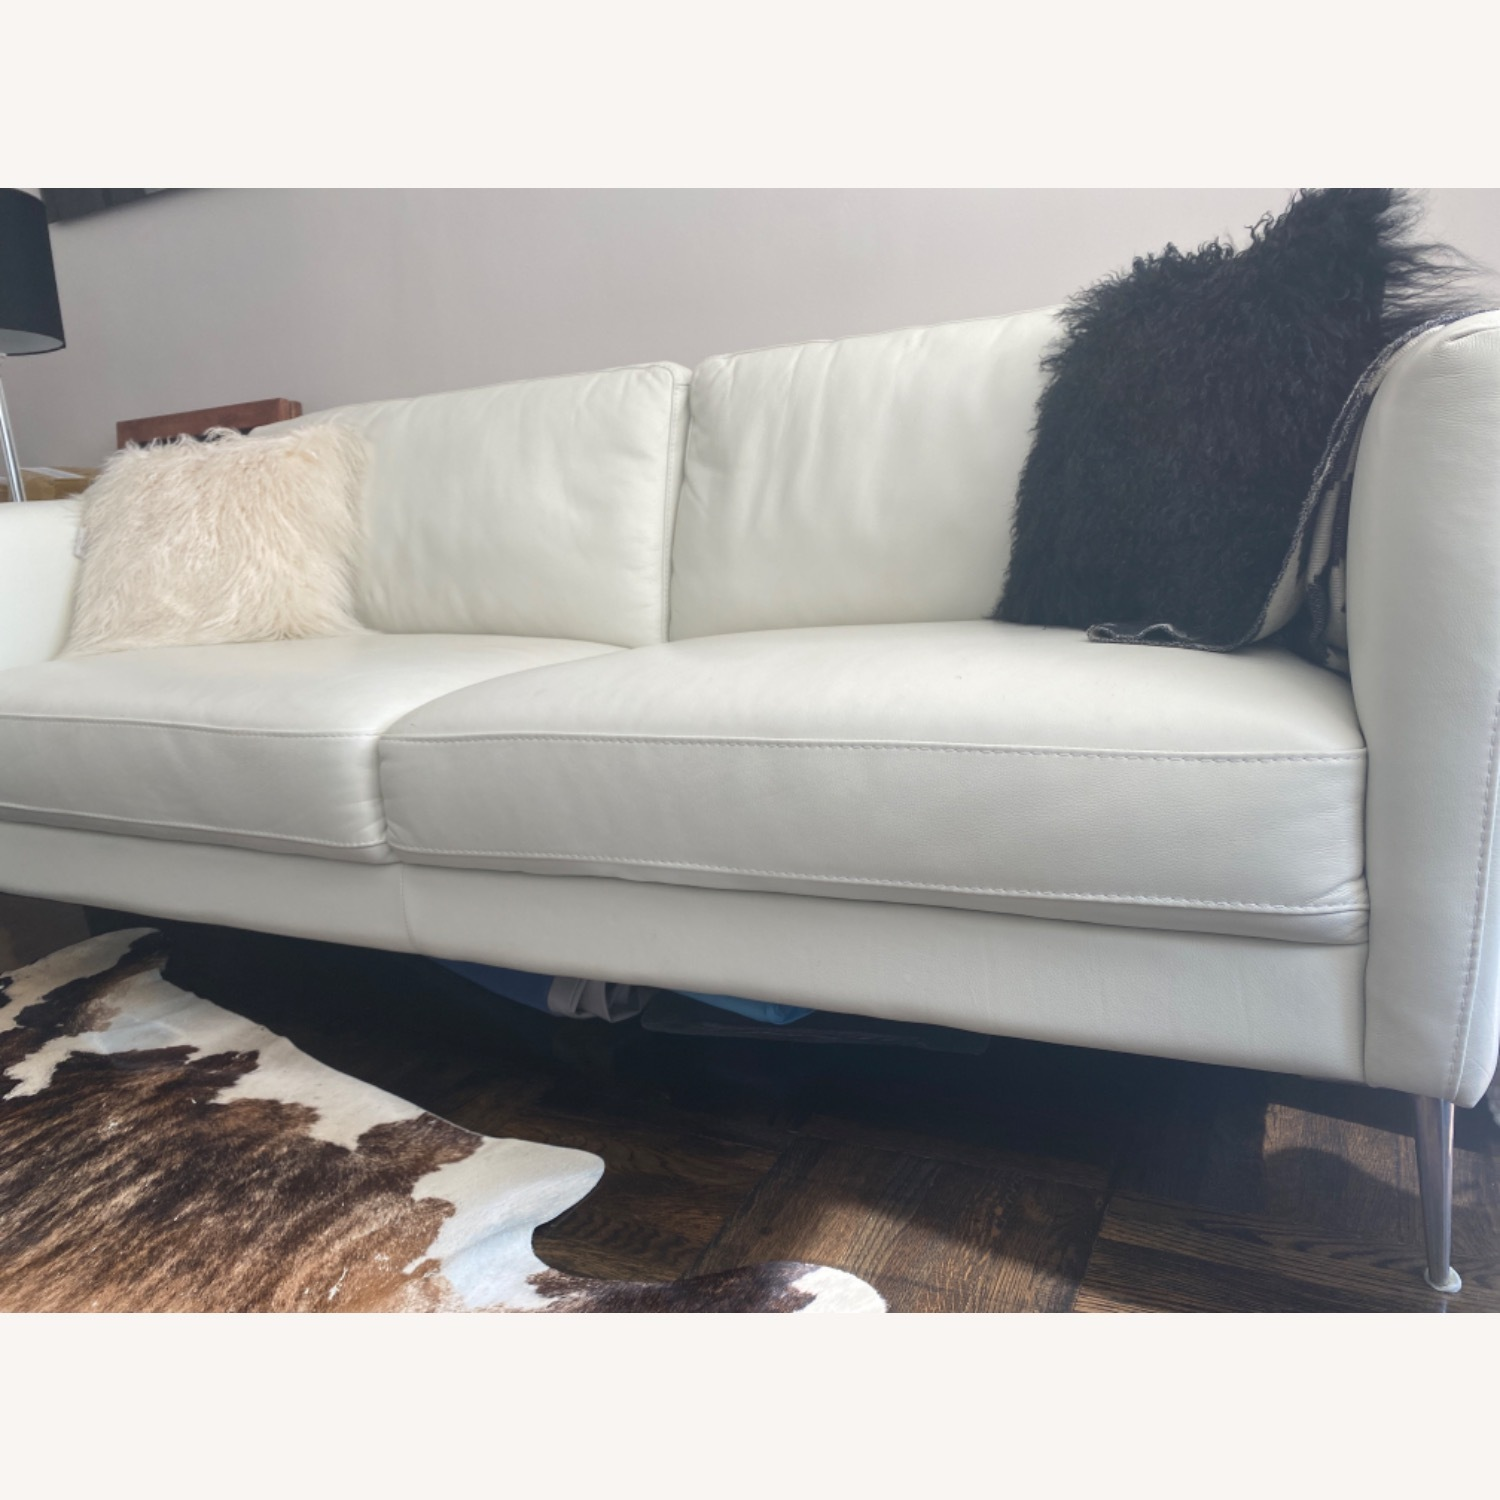 Bloomingdale's White Leather Sofa - image-5